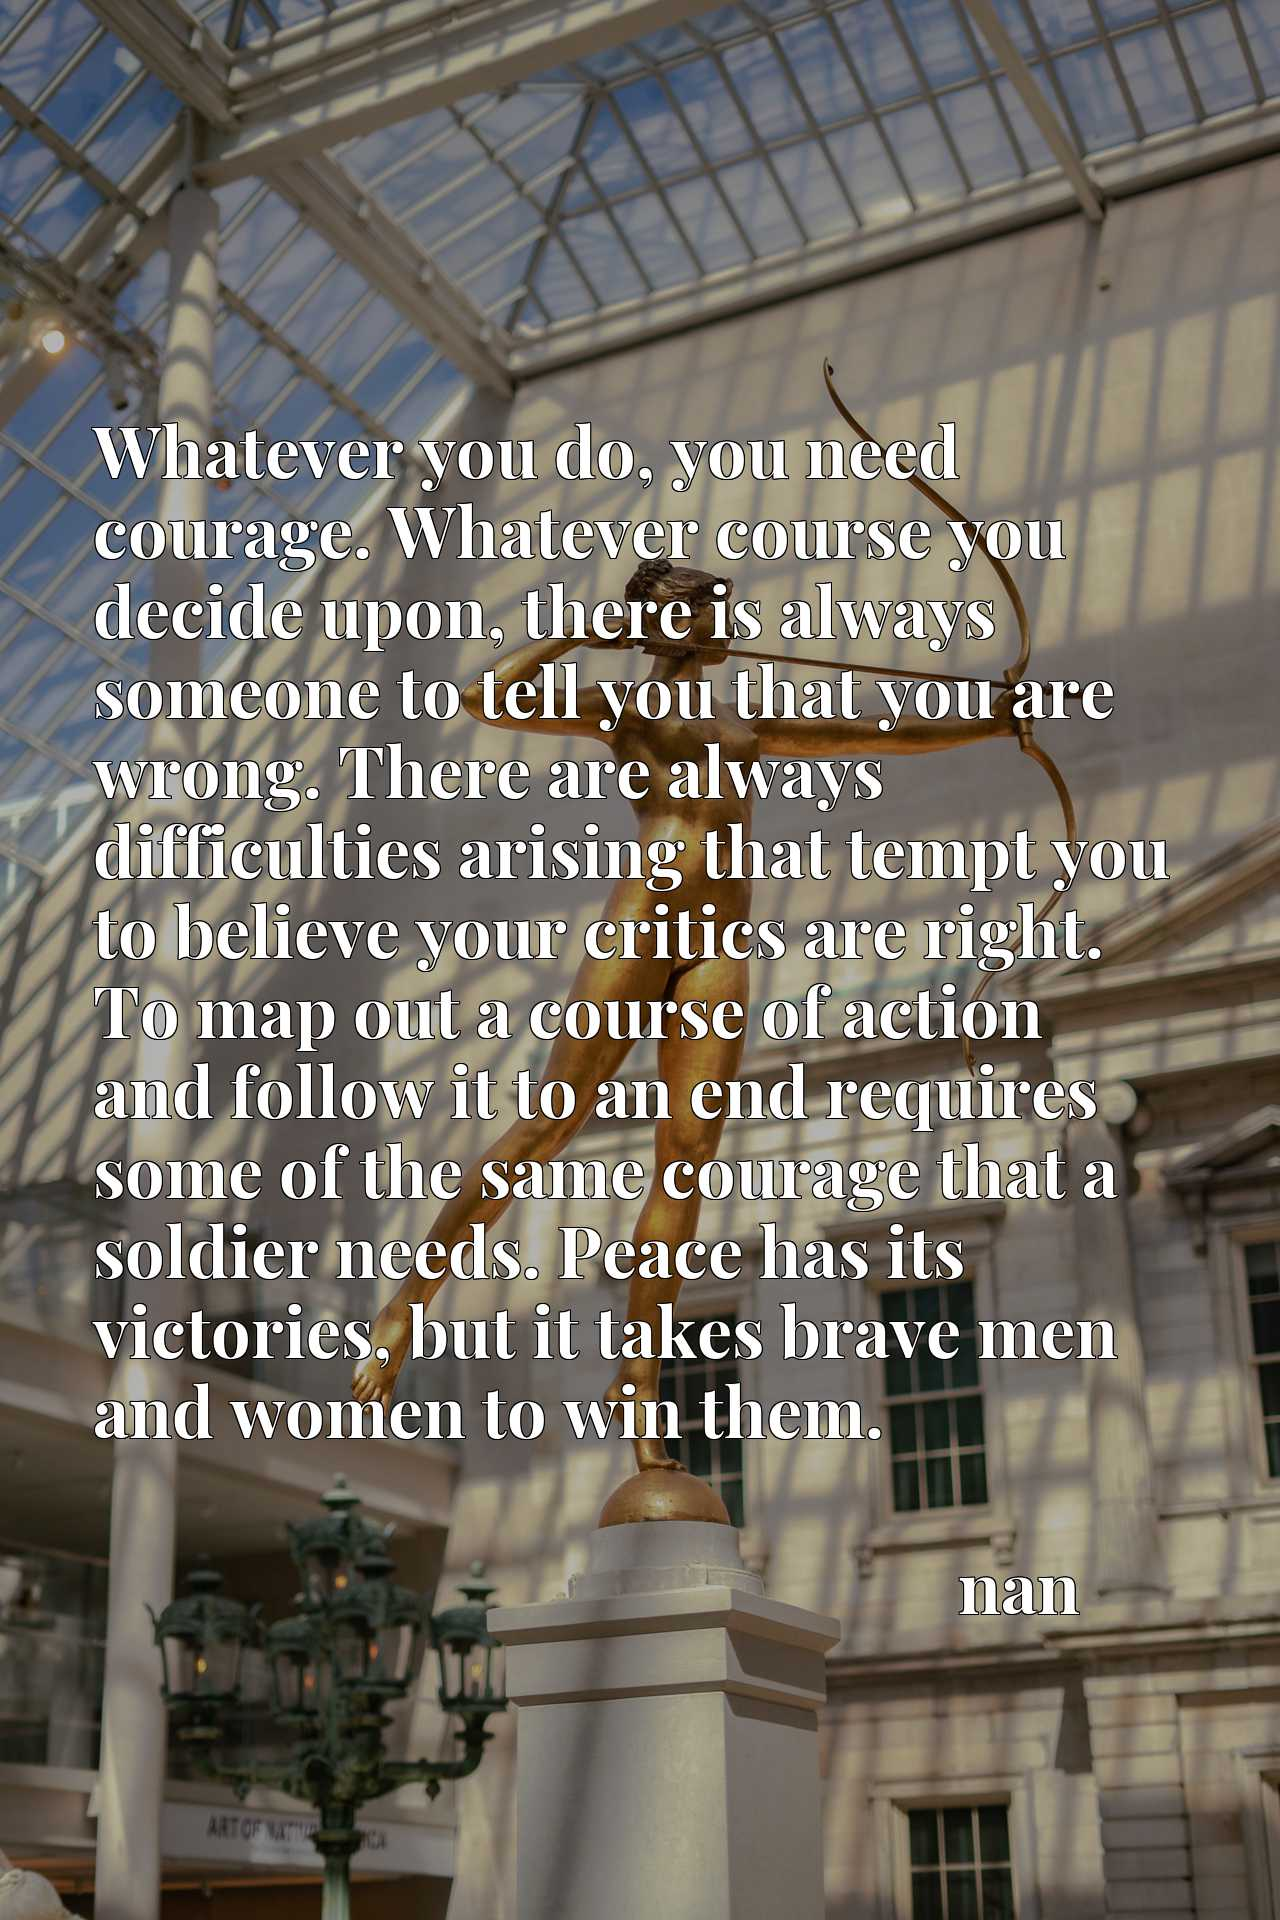 Whatever you do, you need courage. Whatever course you decide upon, there is always someone to tell you that you are wrong. There are always difficulties arising that tempt you to believe your critics are right. To map out a course of action and follow it to an end requires some of the same courage that a soldier needs. Peace has its victories, but it takes brave men and women to win them.